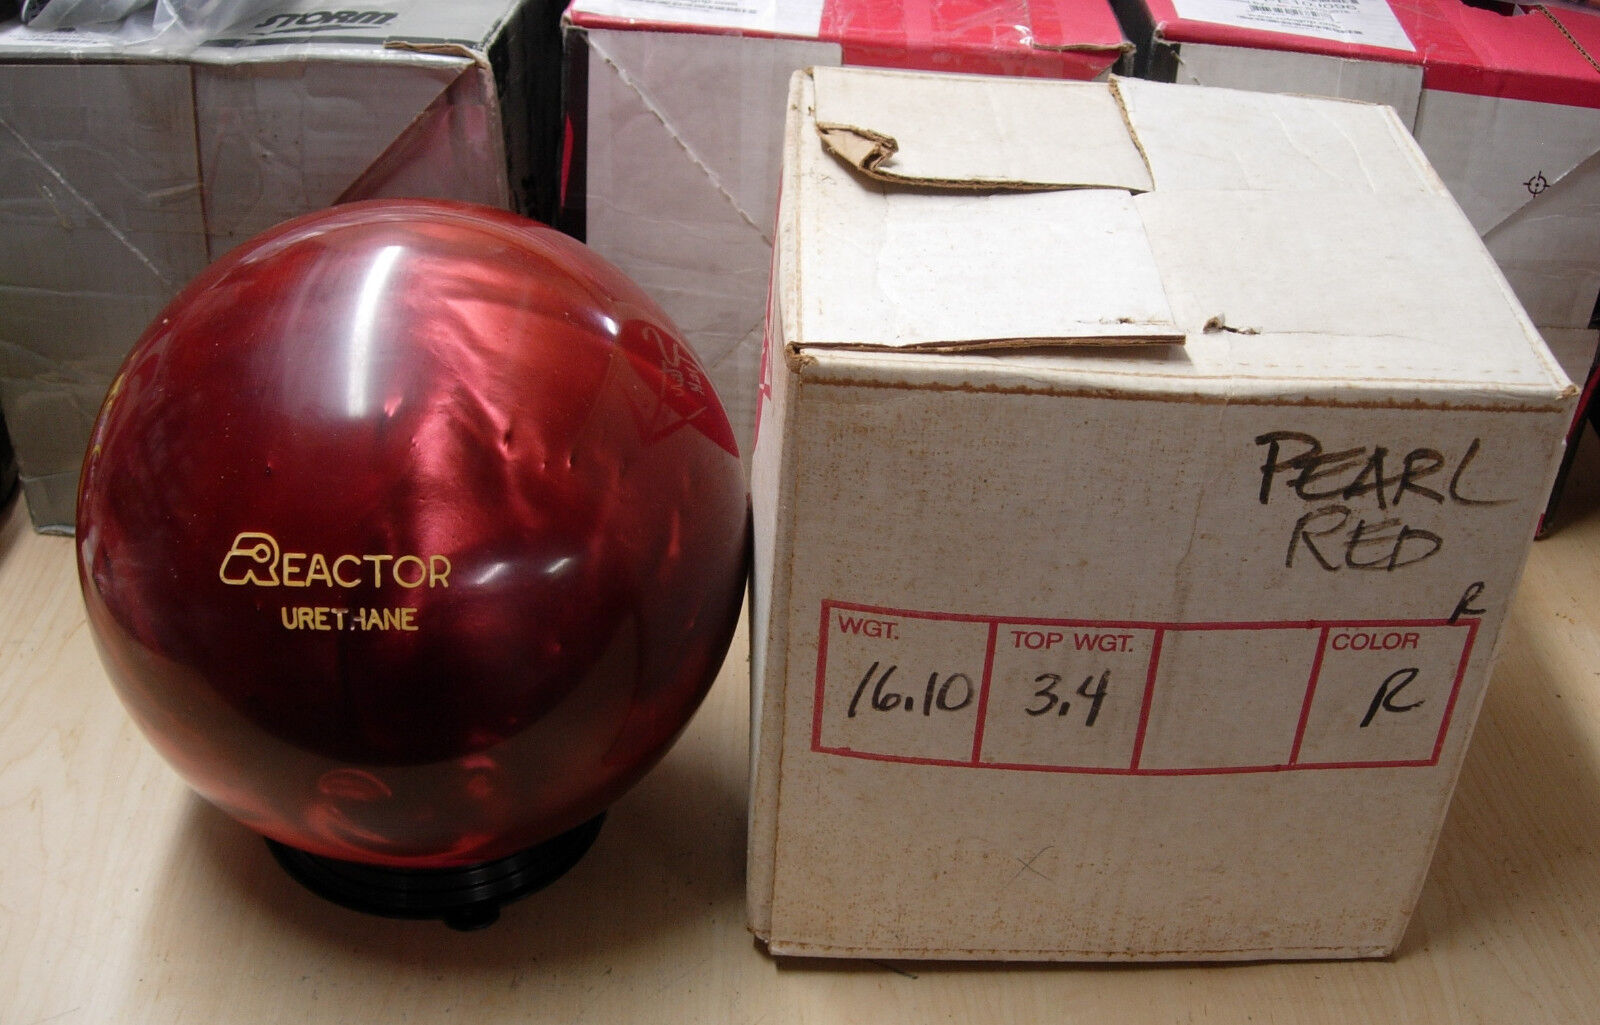 = 16.10, TW 3.4 1987 Star Trak REACTOR Urethane Red Pearl, Solon, Ohio